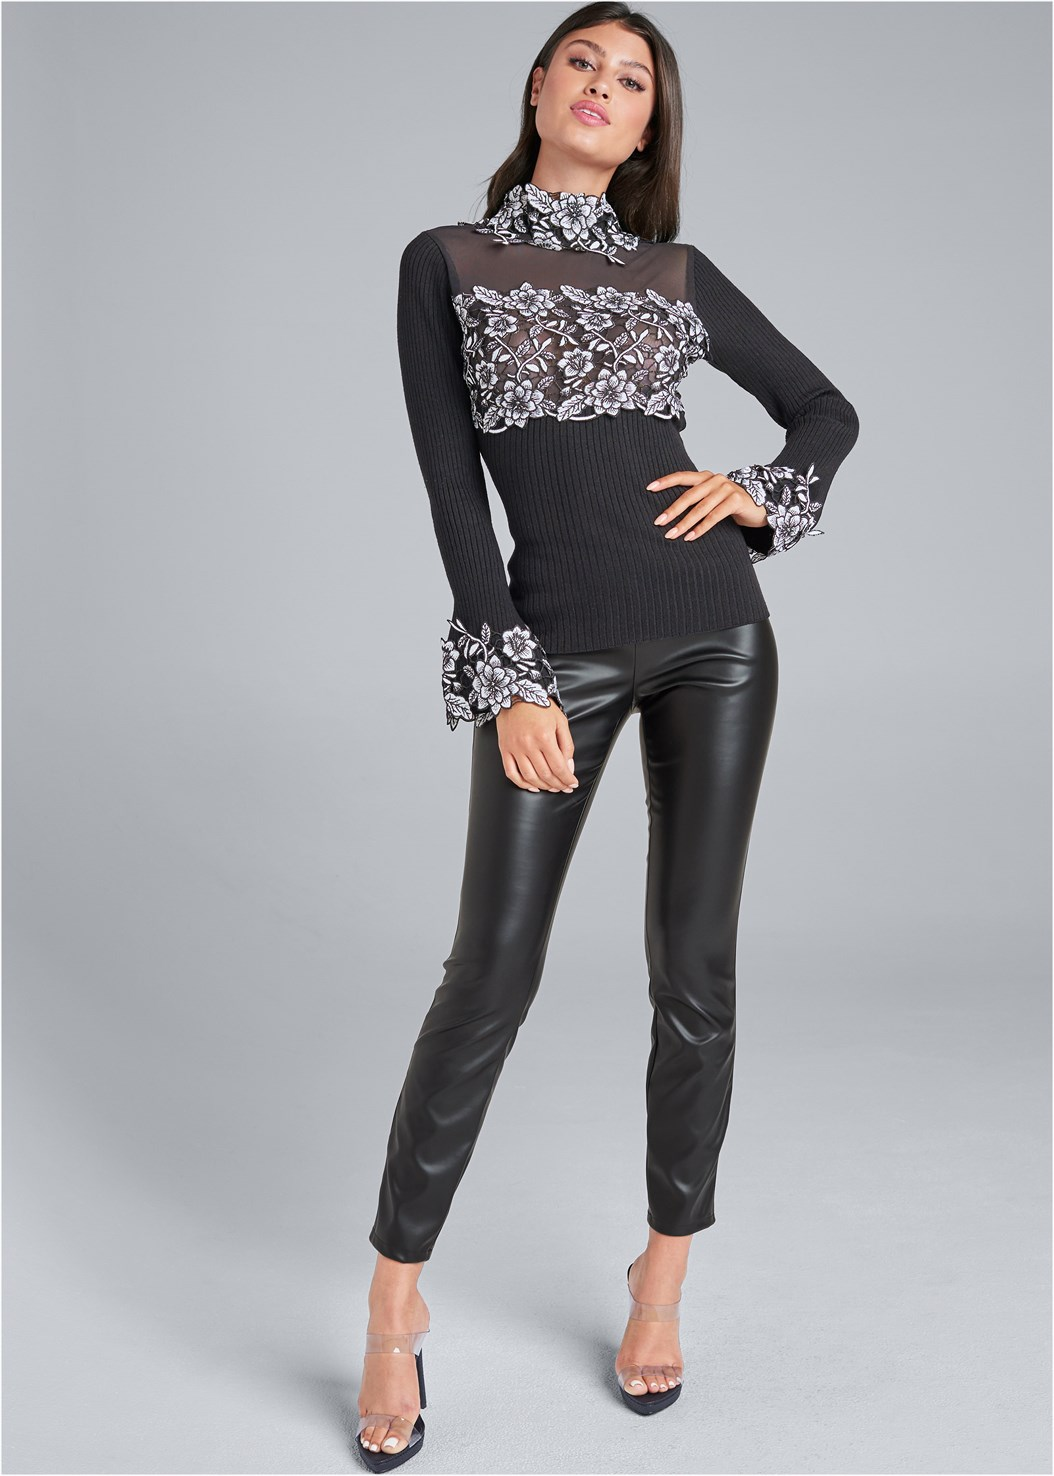 Faux Leather Leggings,Floral Applique Sweater,Basic Cami Two Pack,Lace Detail Tank,Jean Jacket,Faux Leather Lace Up Jacket,Lucite Strap Heels,High Heel Strappy Sandals,Cut Out Detail Boots